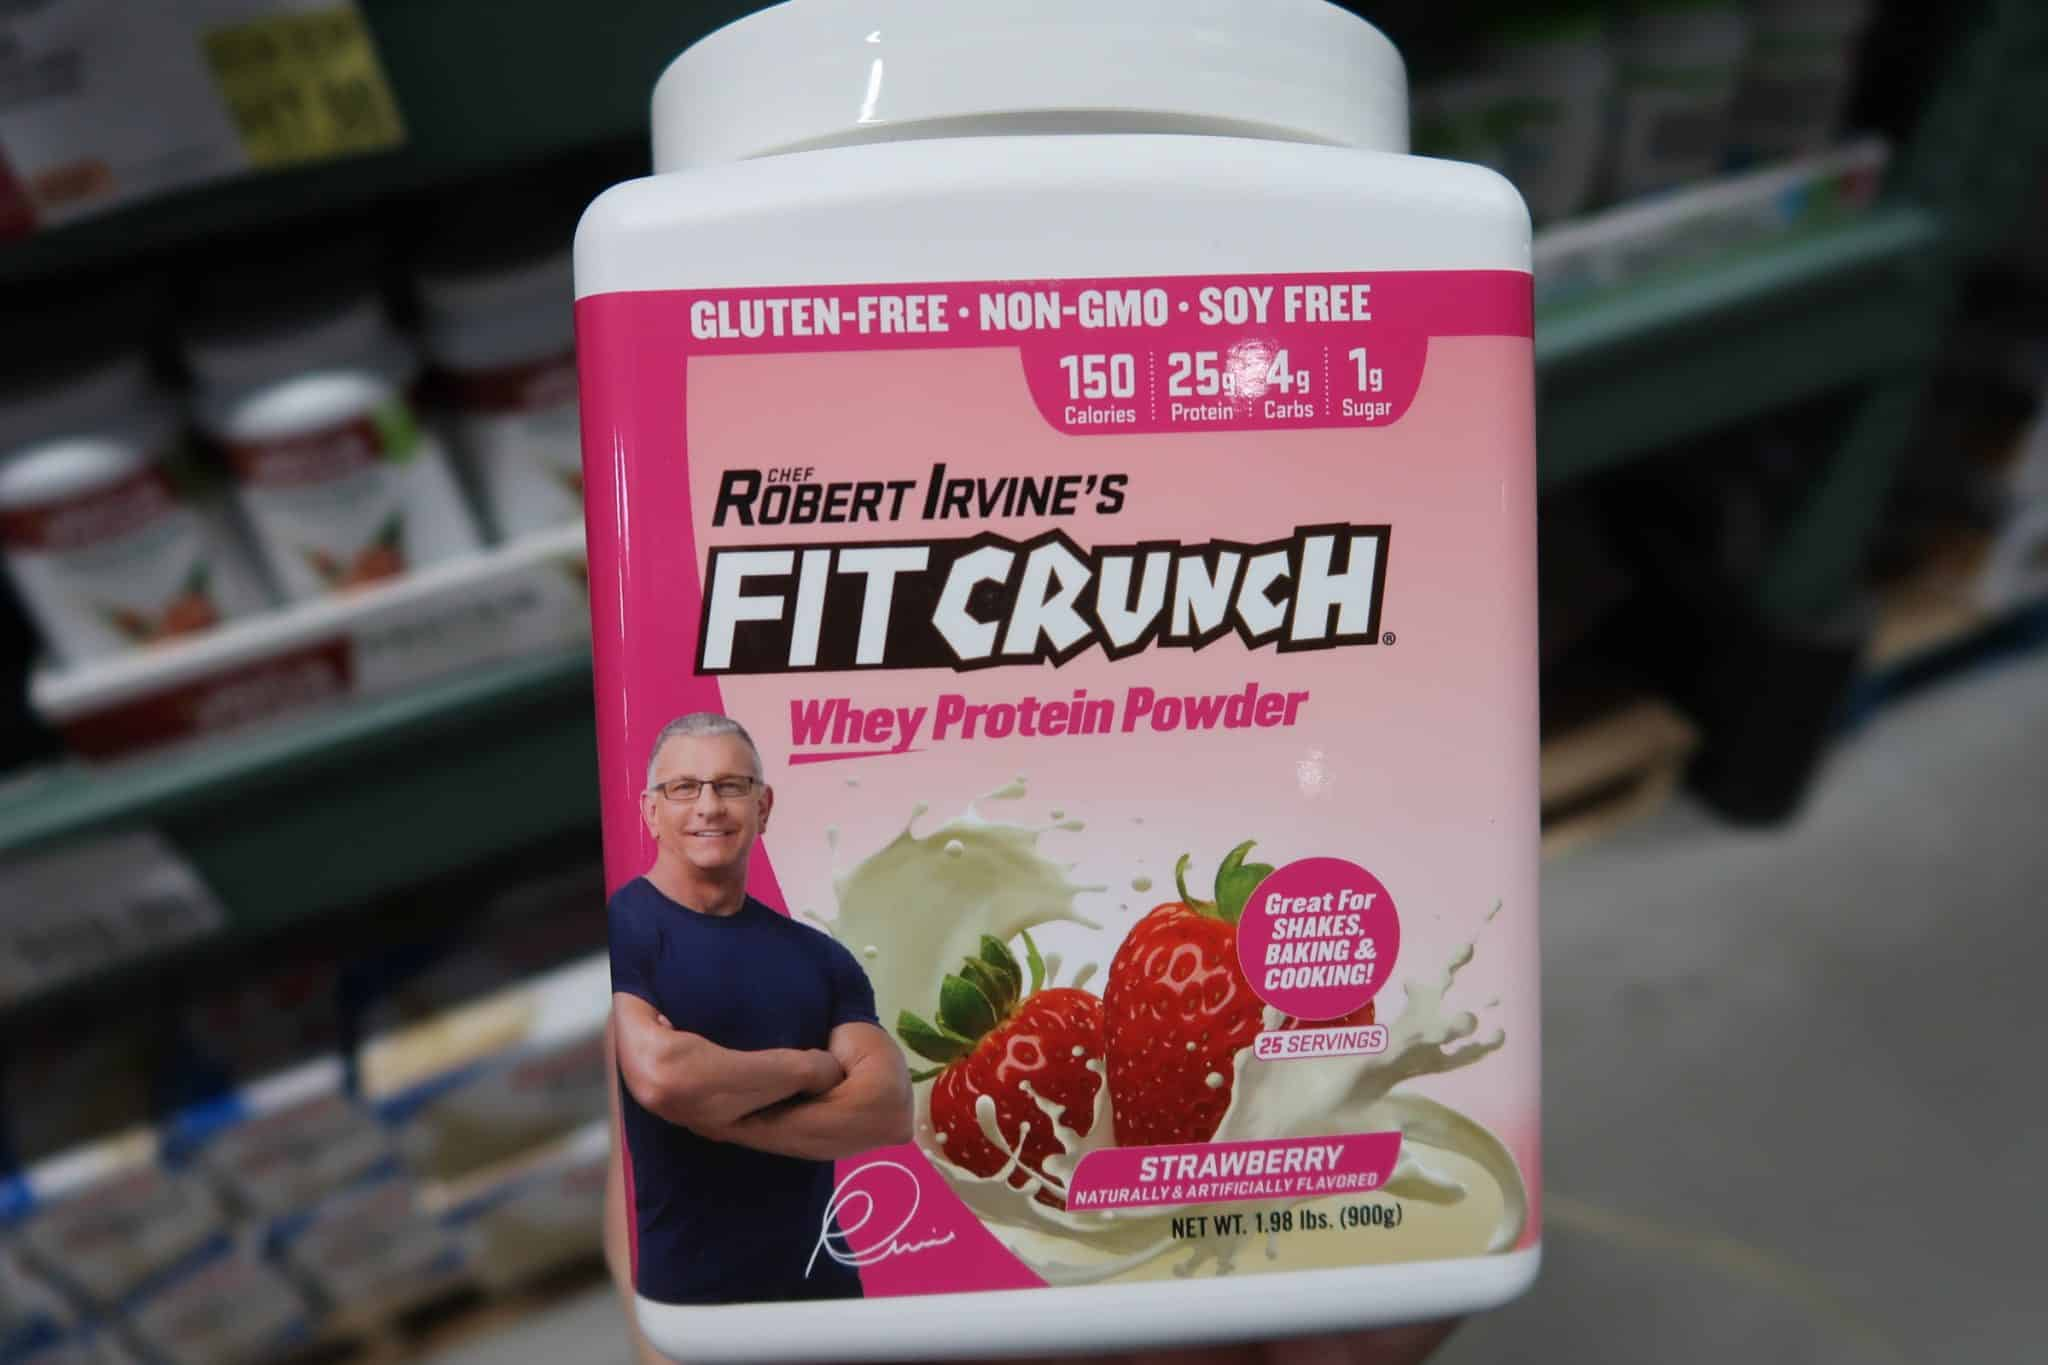 WOW! Fit Crunch Whey Protein Powder ONLY $2.98!